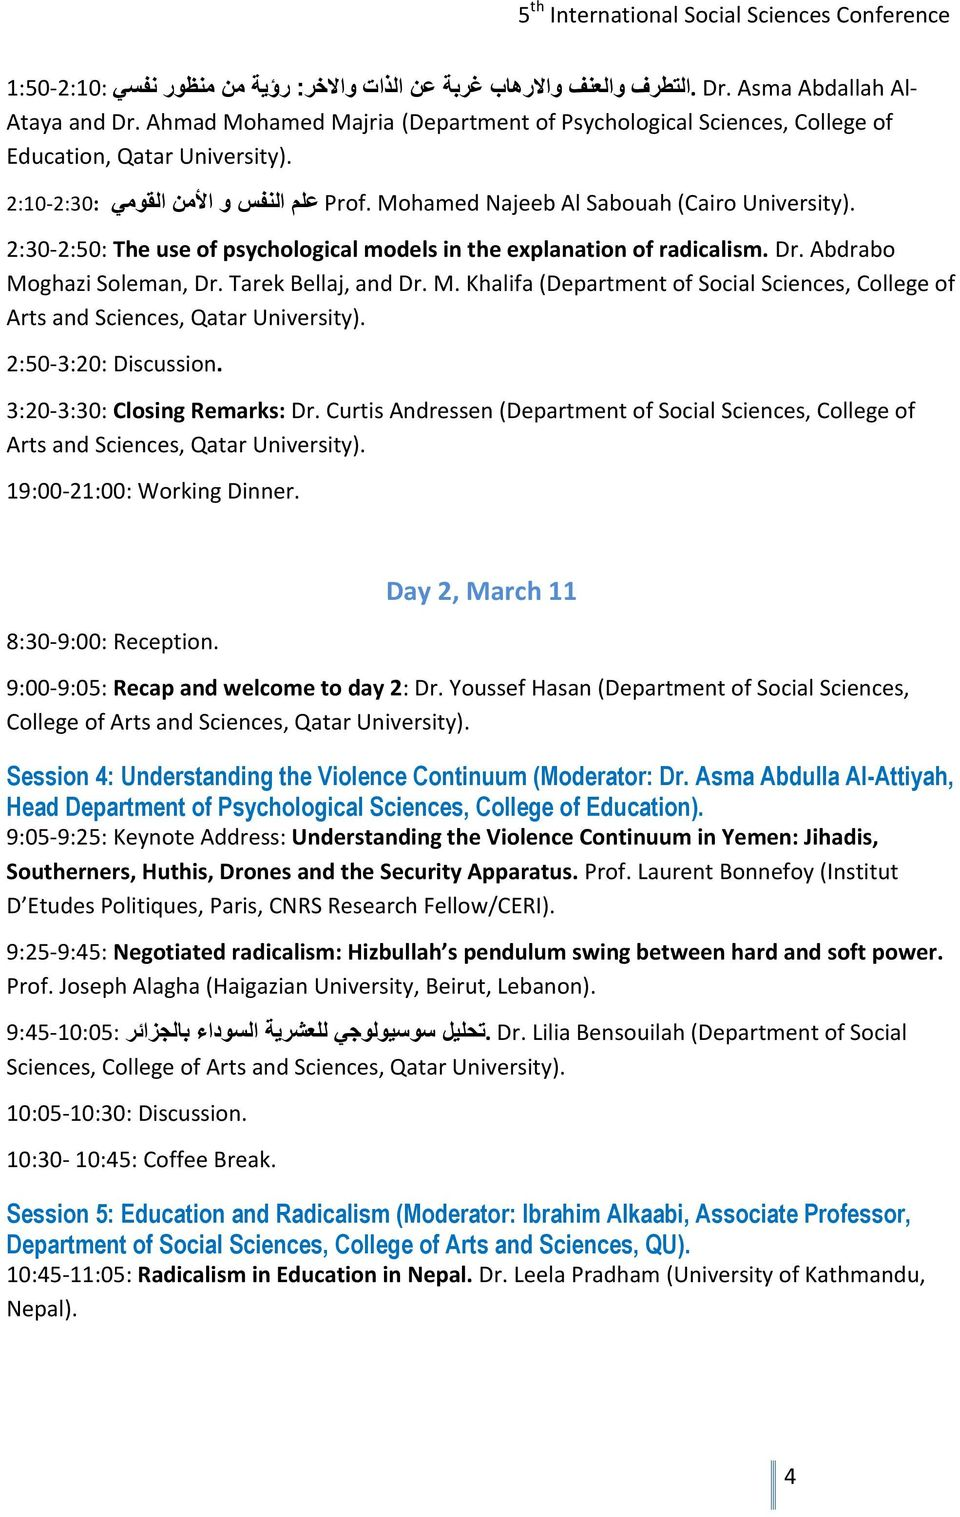 2:30-2:50: The use of psychological models in the explanation of radicalism. Dr. Abdrabo Moghazi Soleman, Dr. Tarek Bellaj, and Dr. M. Khalifa (Department of Social Sciences, College of Arts and Sciences, Qatar University).